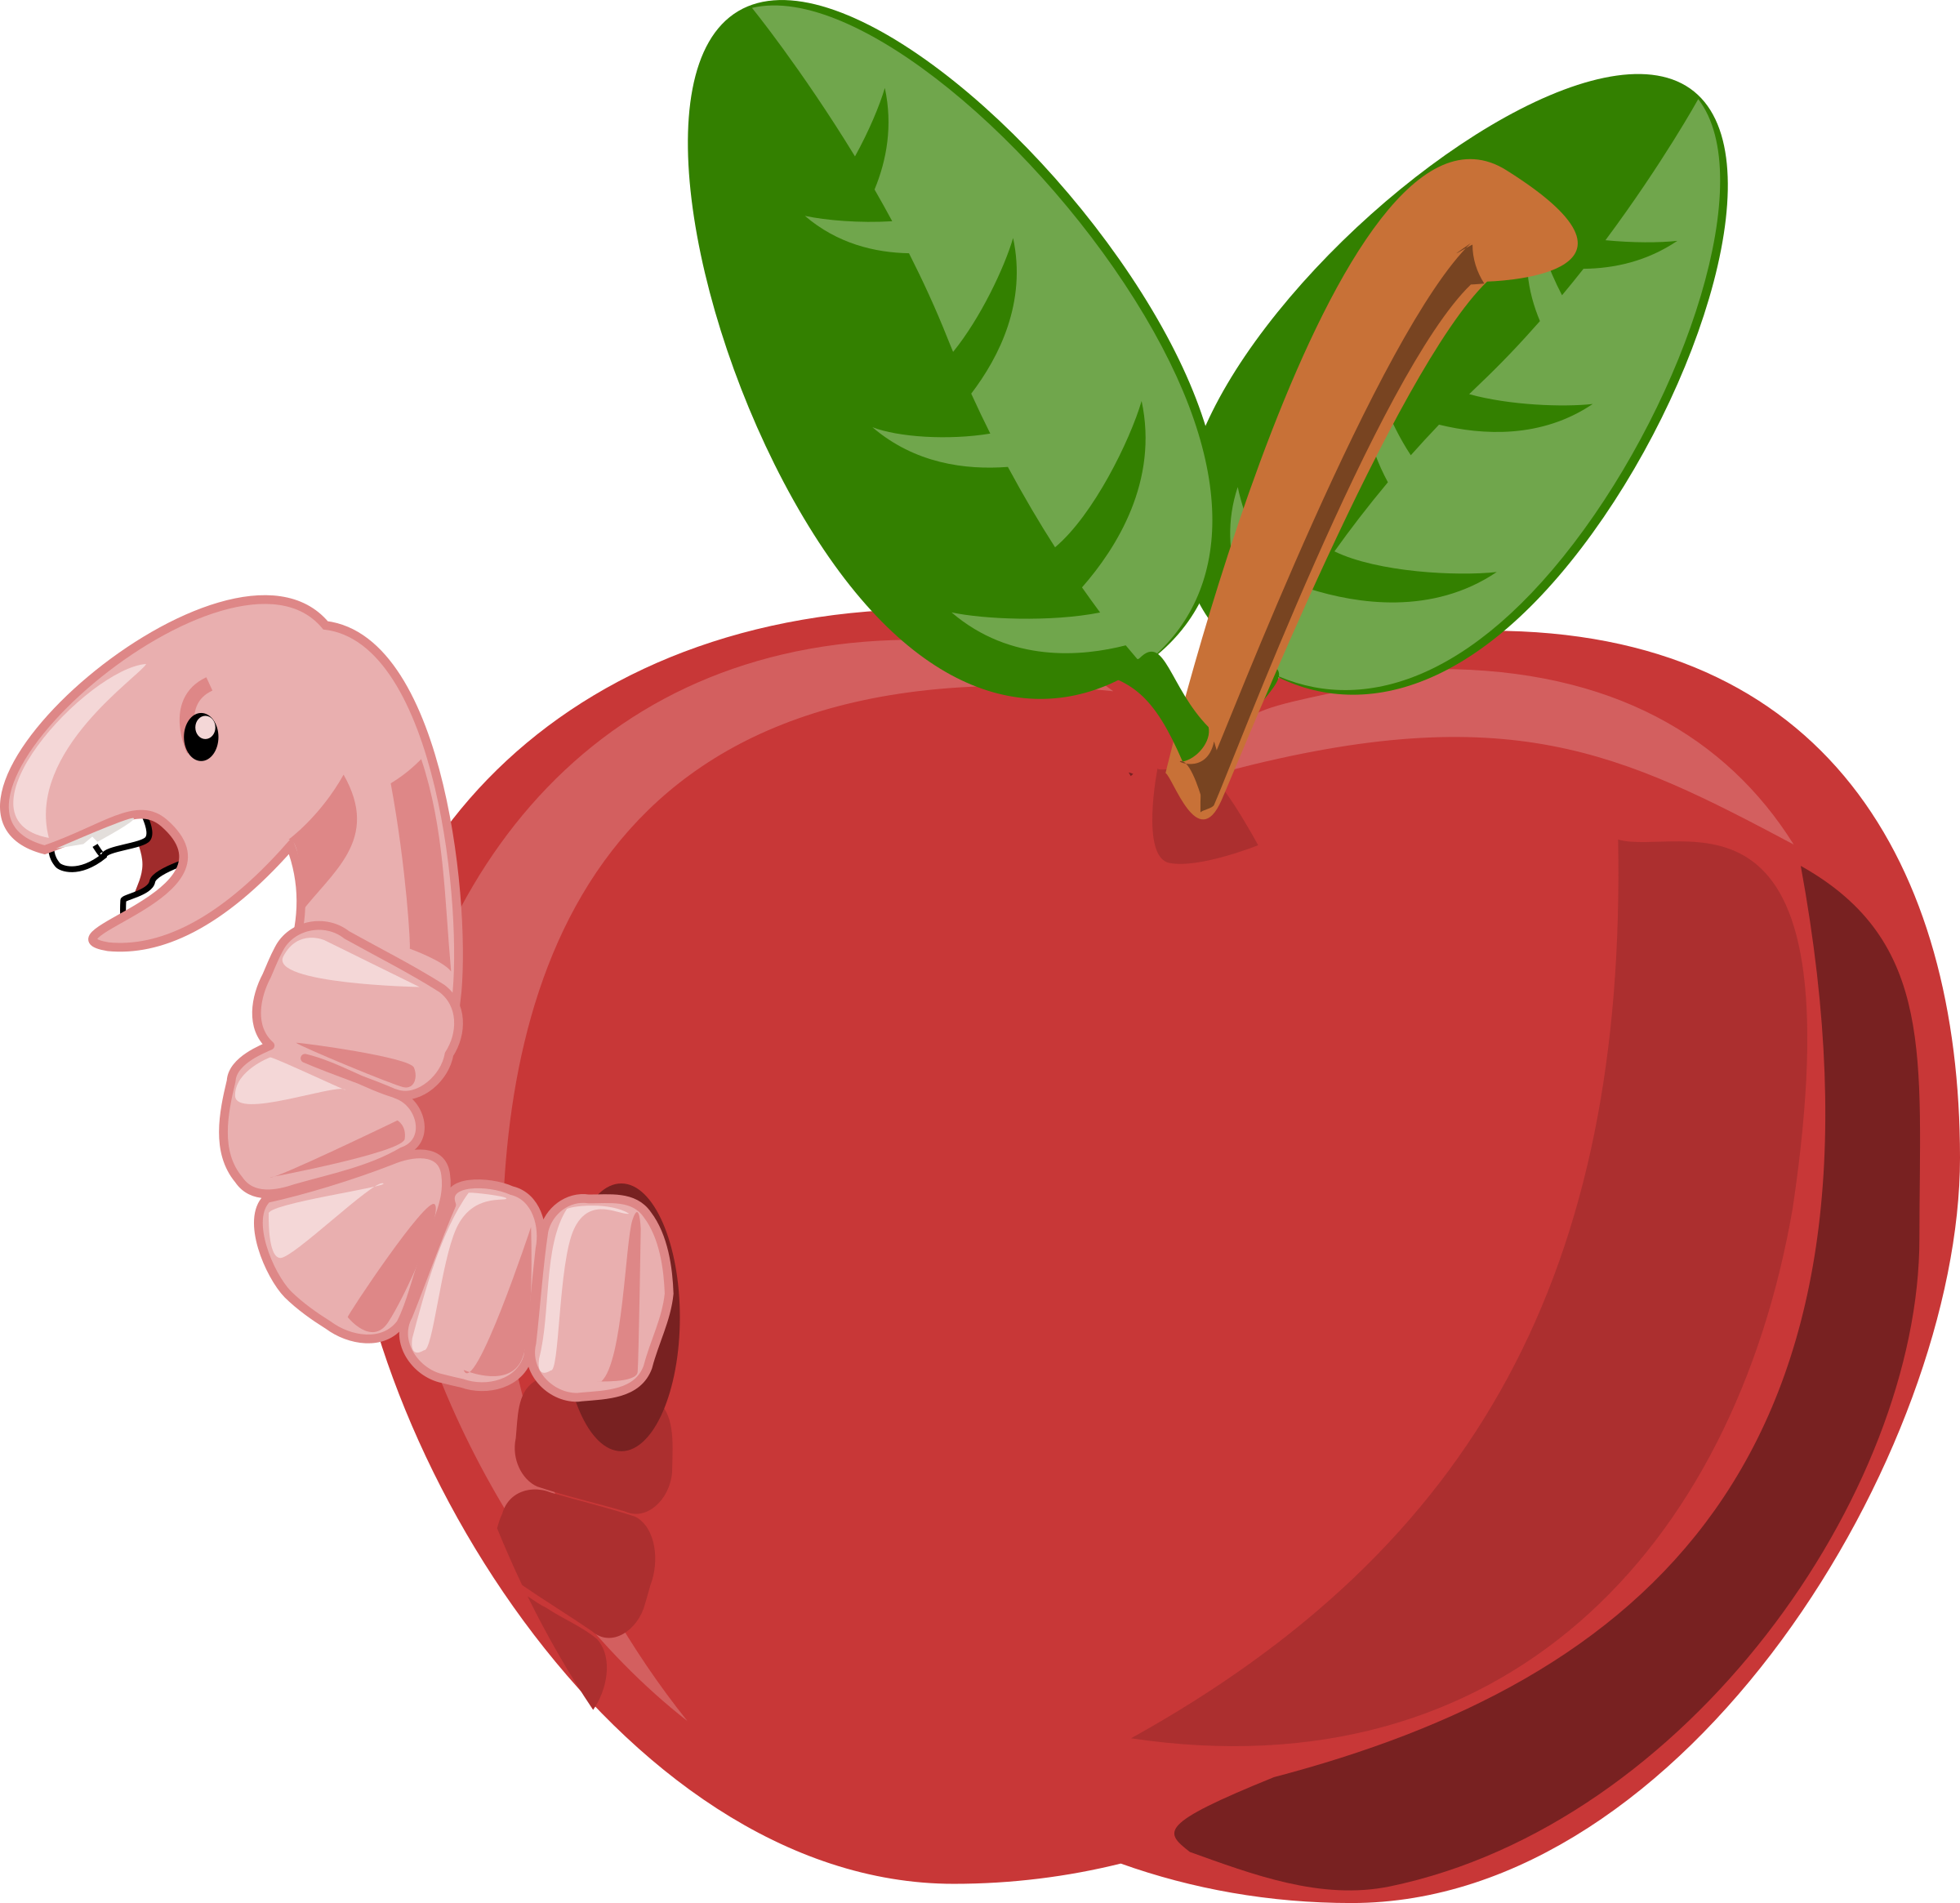 cartoon apple with worm by rg1024